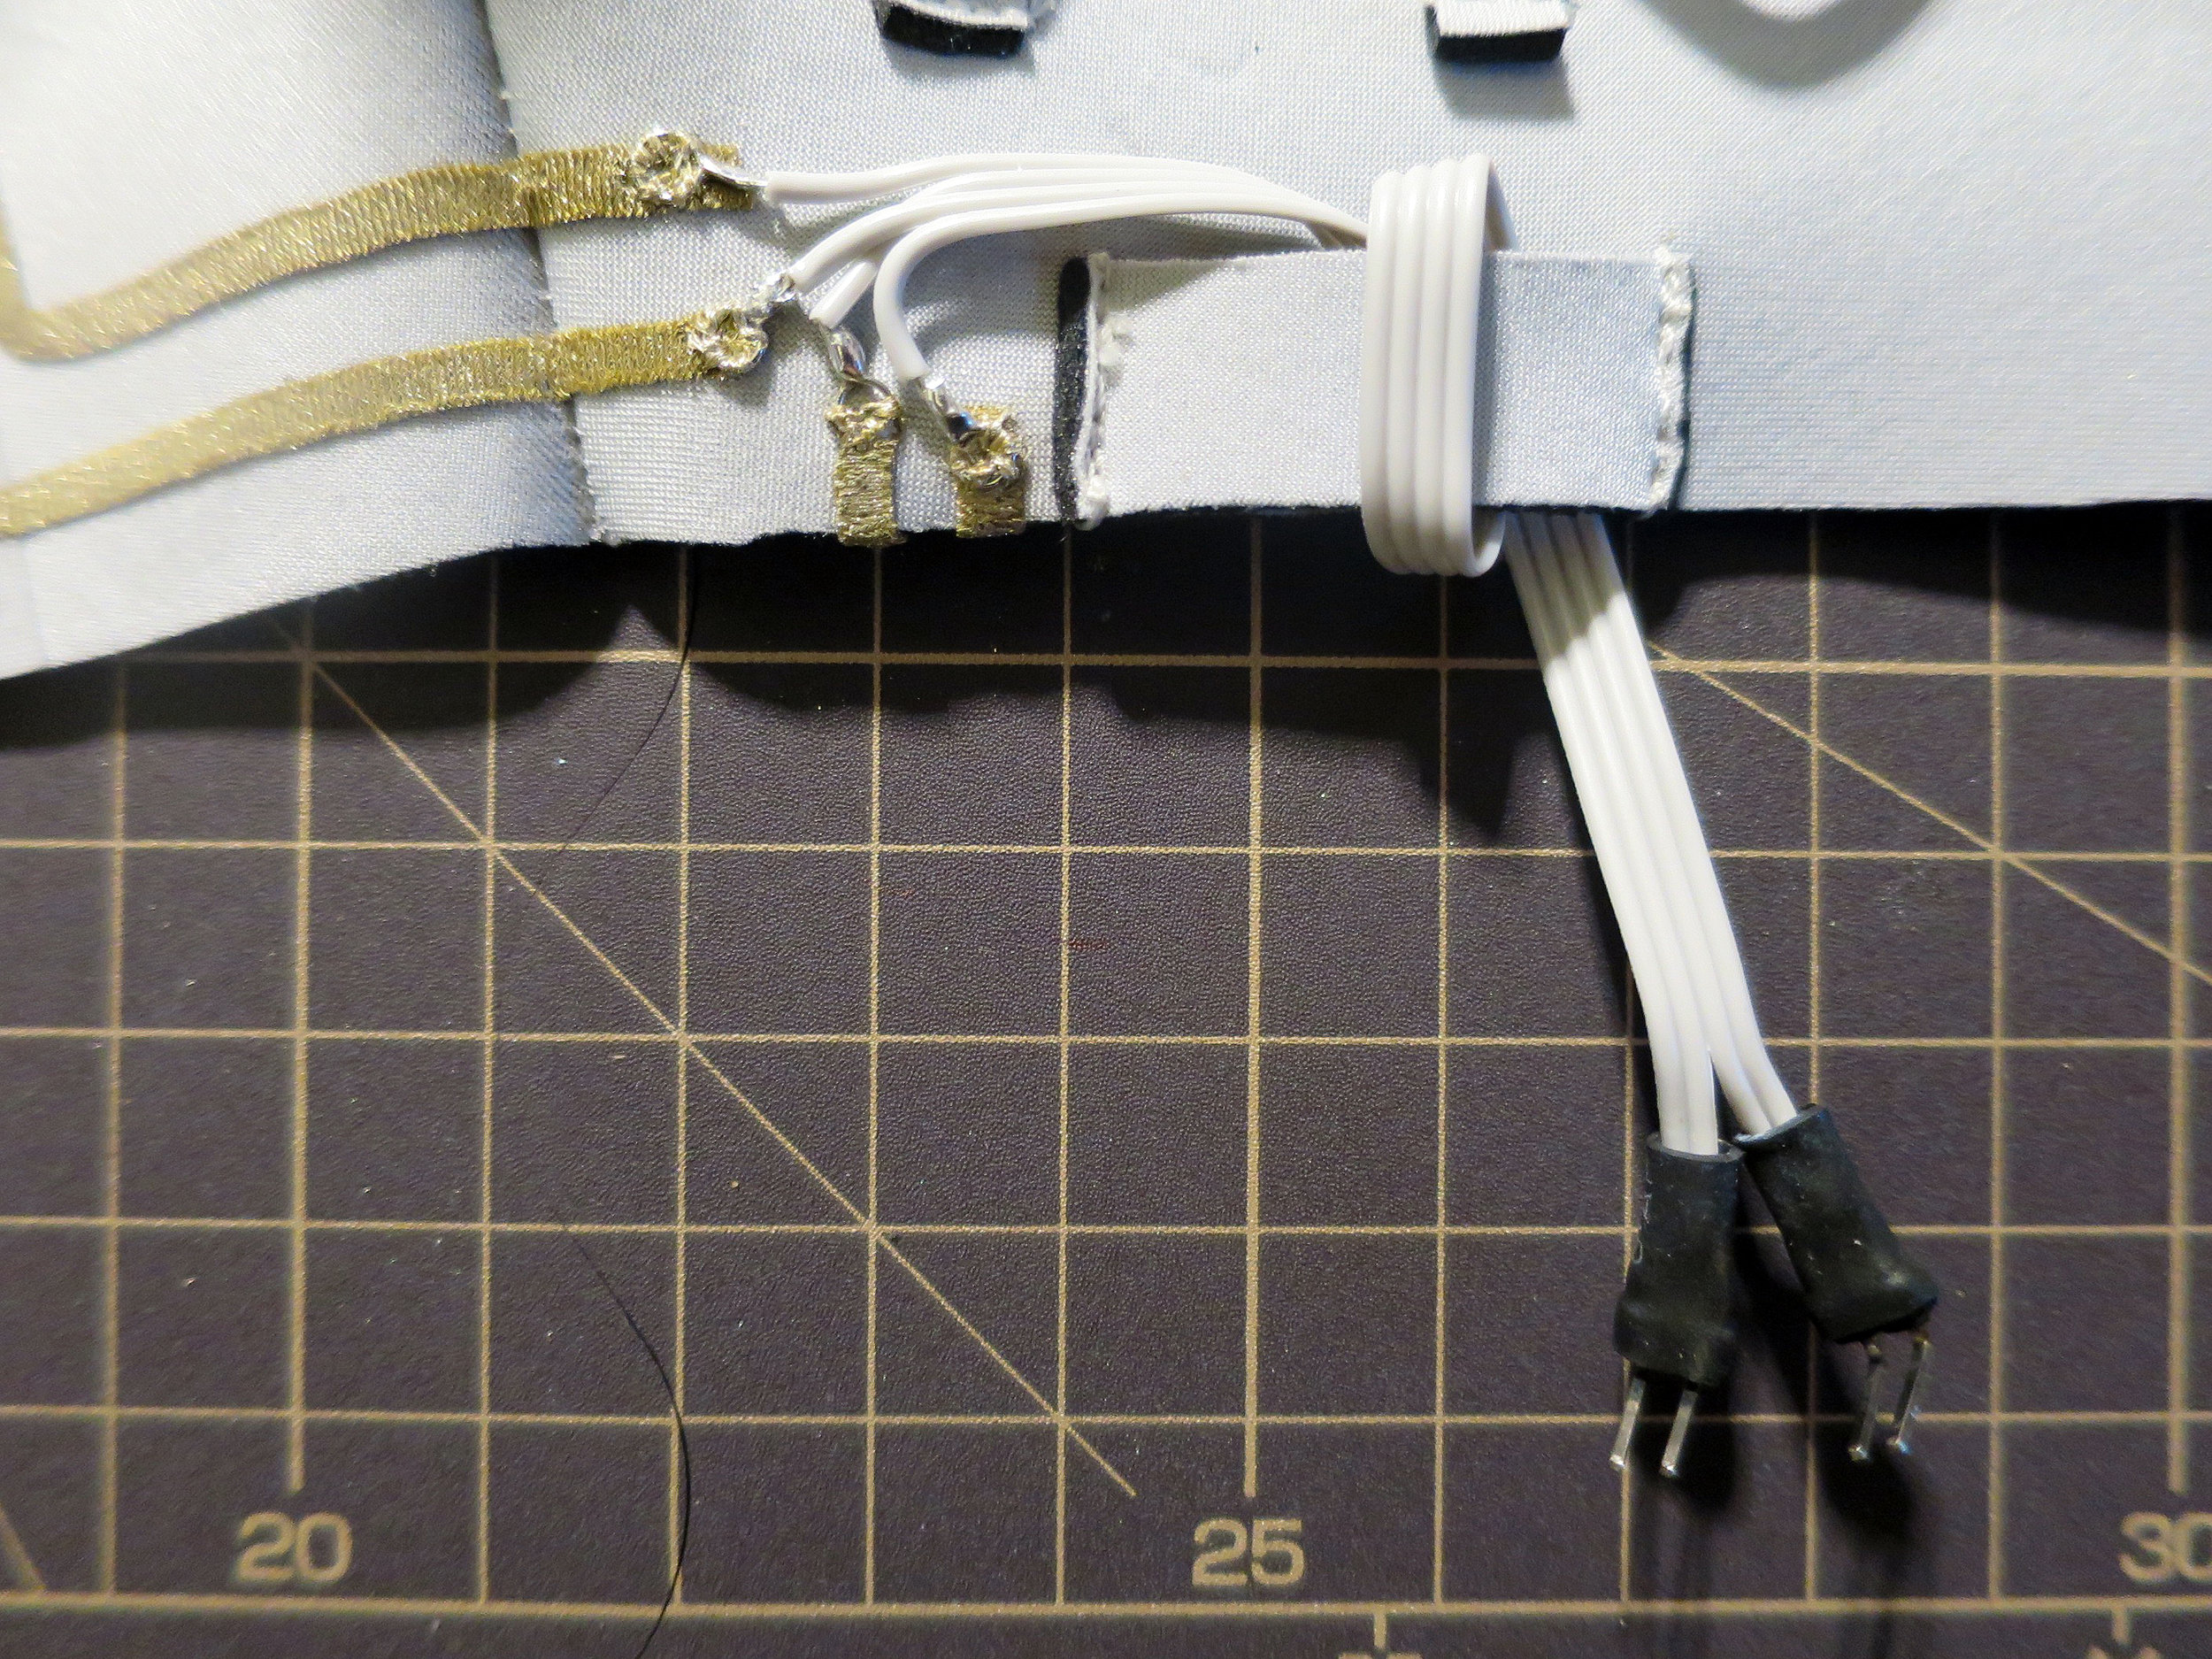 This glove controller instructable  (step 9) shows how to to solder cables with stitching loops and header pins